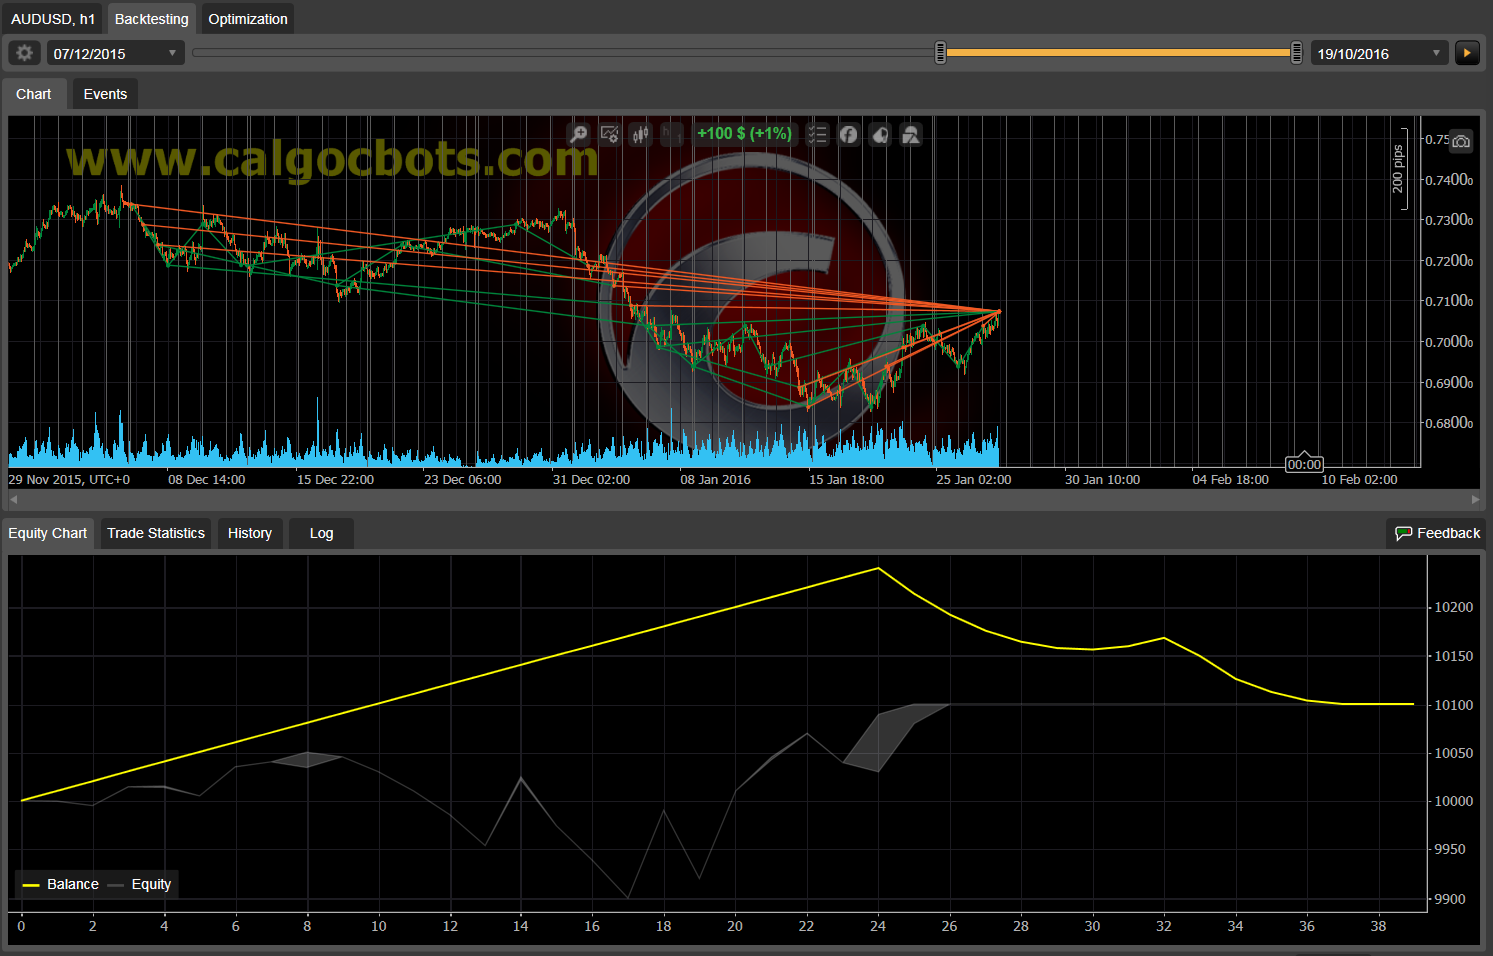 Dual Grid Hedge AUD USD 1h cAlgo cBots cTrader 1k 100 50 100 - 05